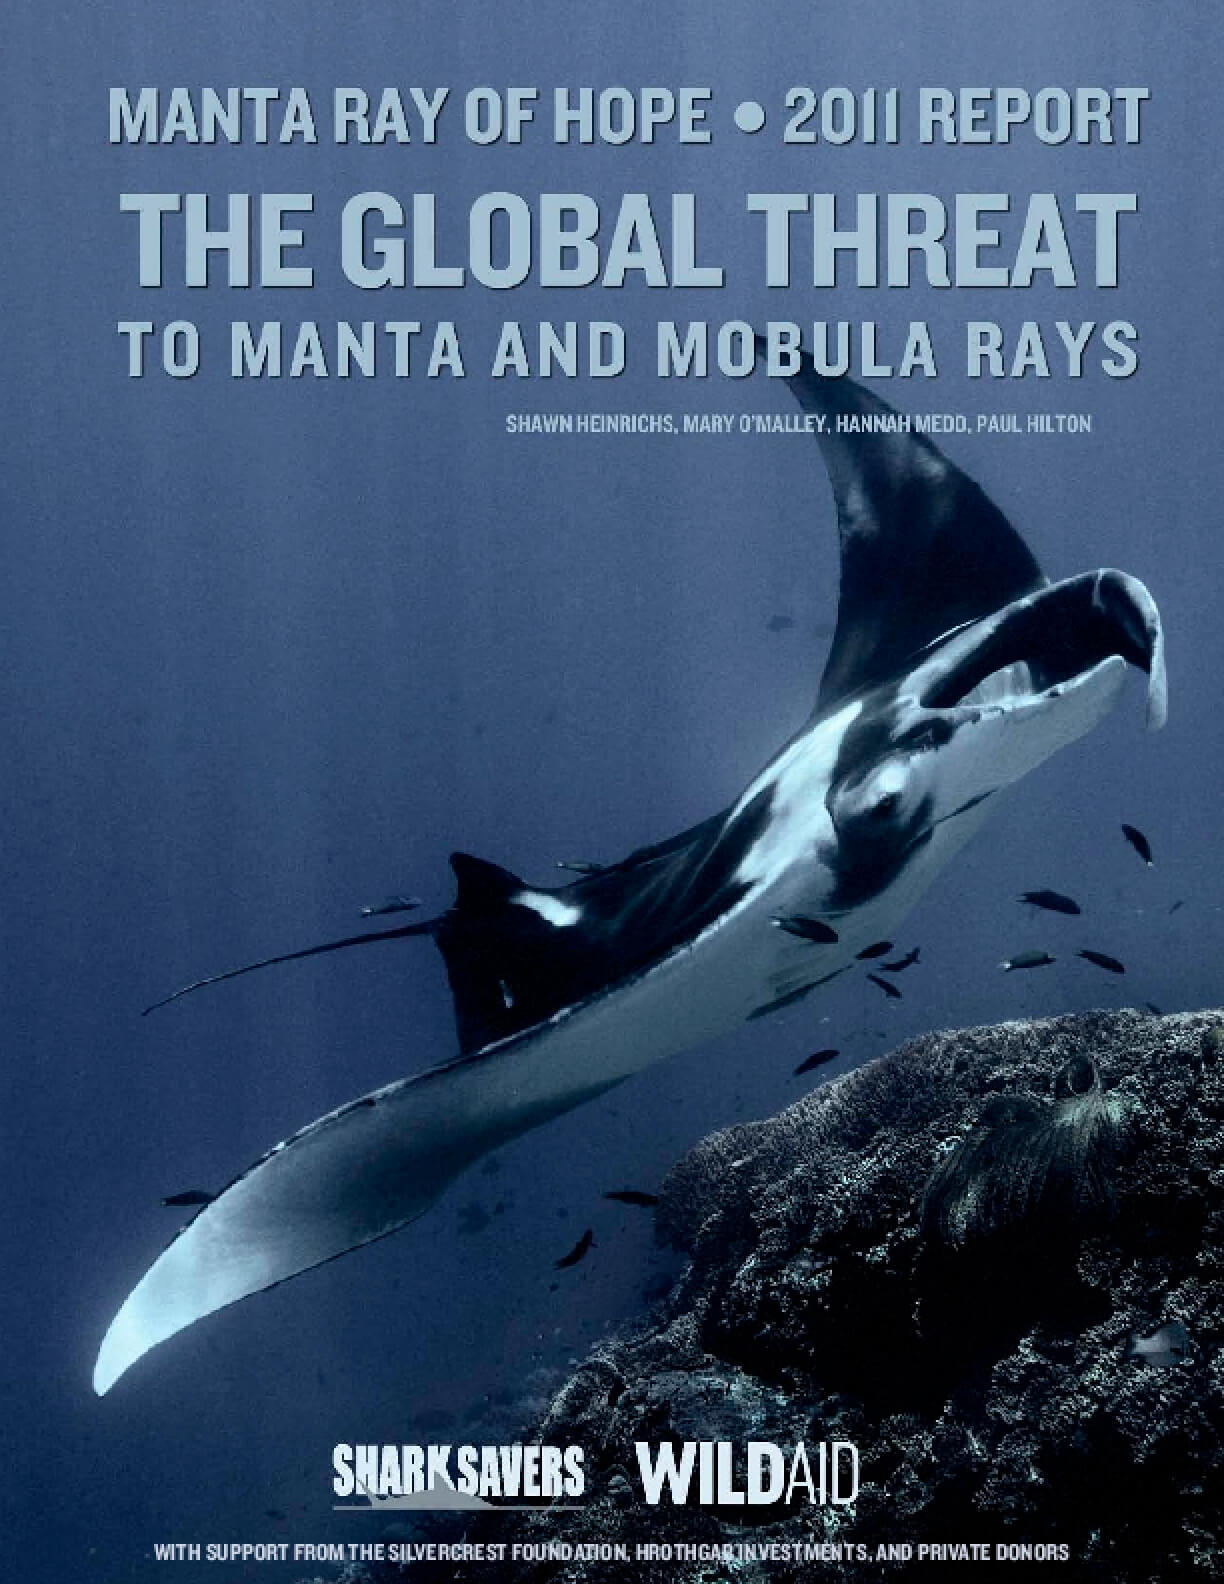 The Global Threat to Manta and Mobula Rays